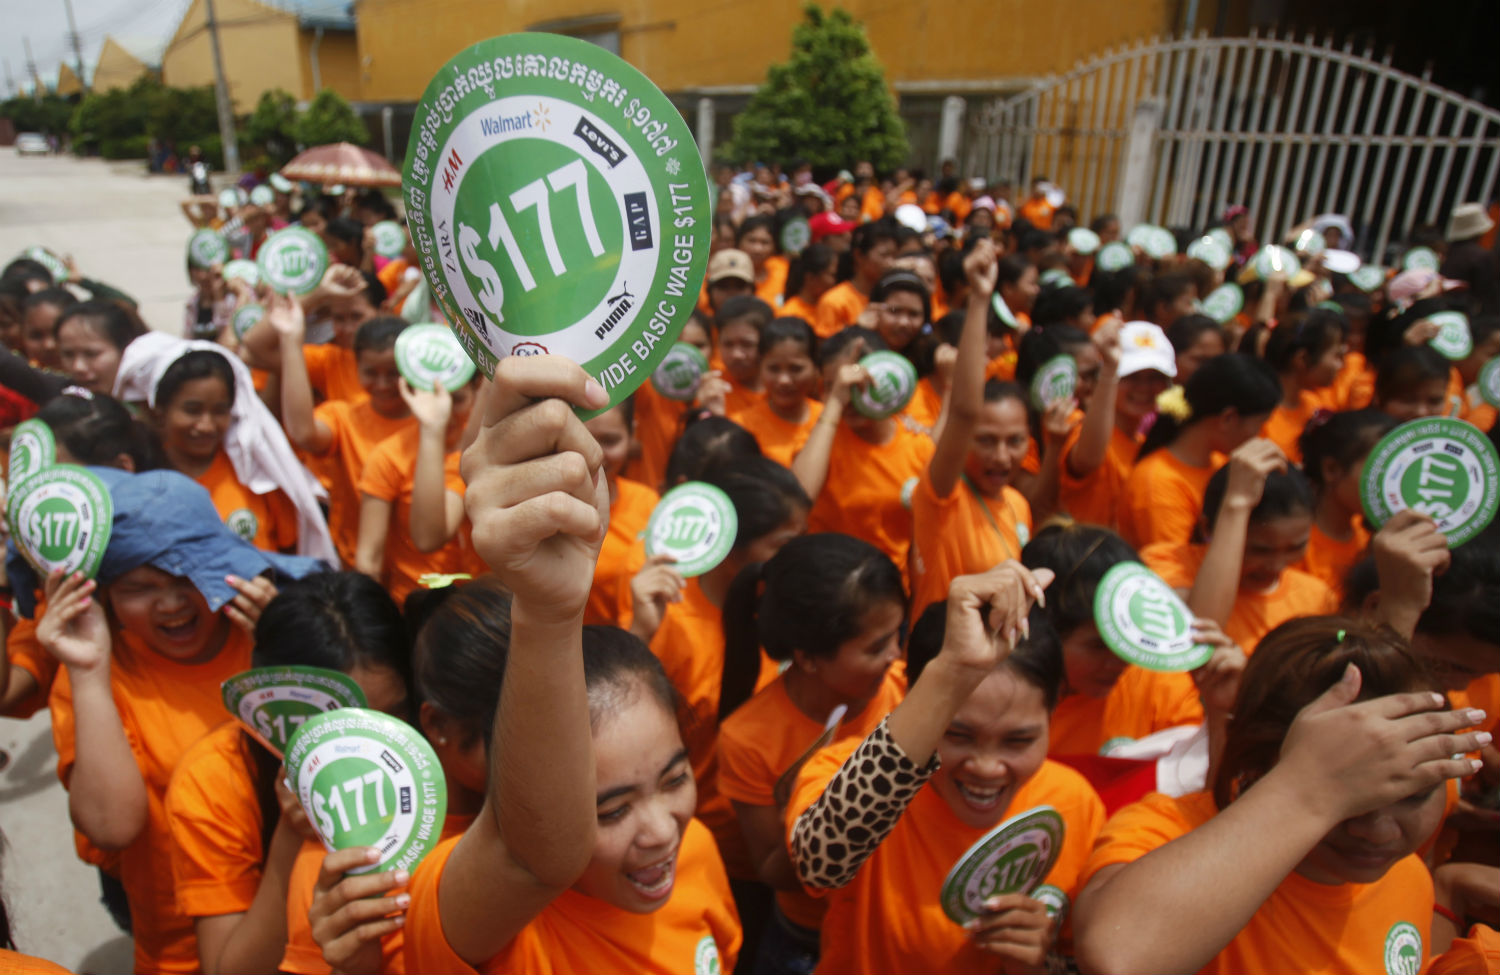 Garment-workers-in-Phnom-Penh-protest-for-higher-wages